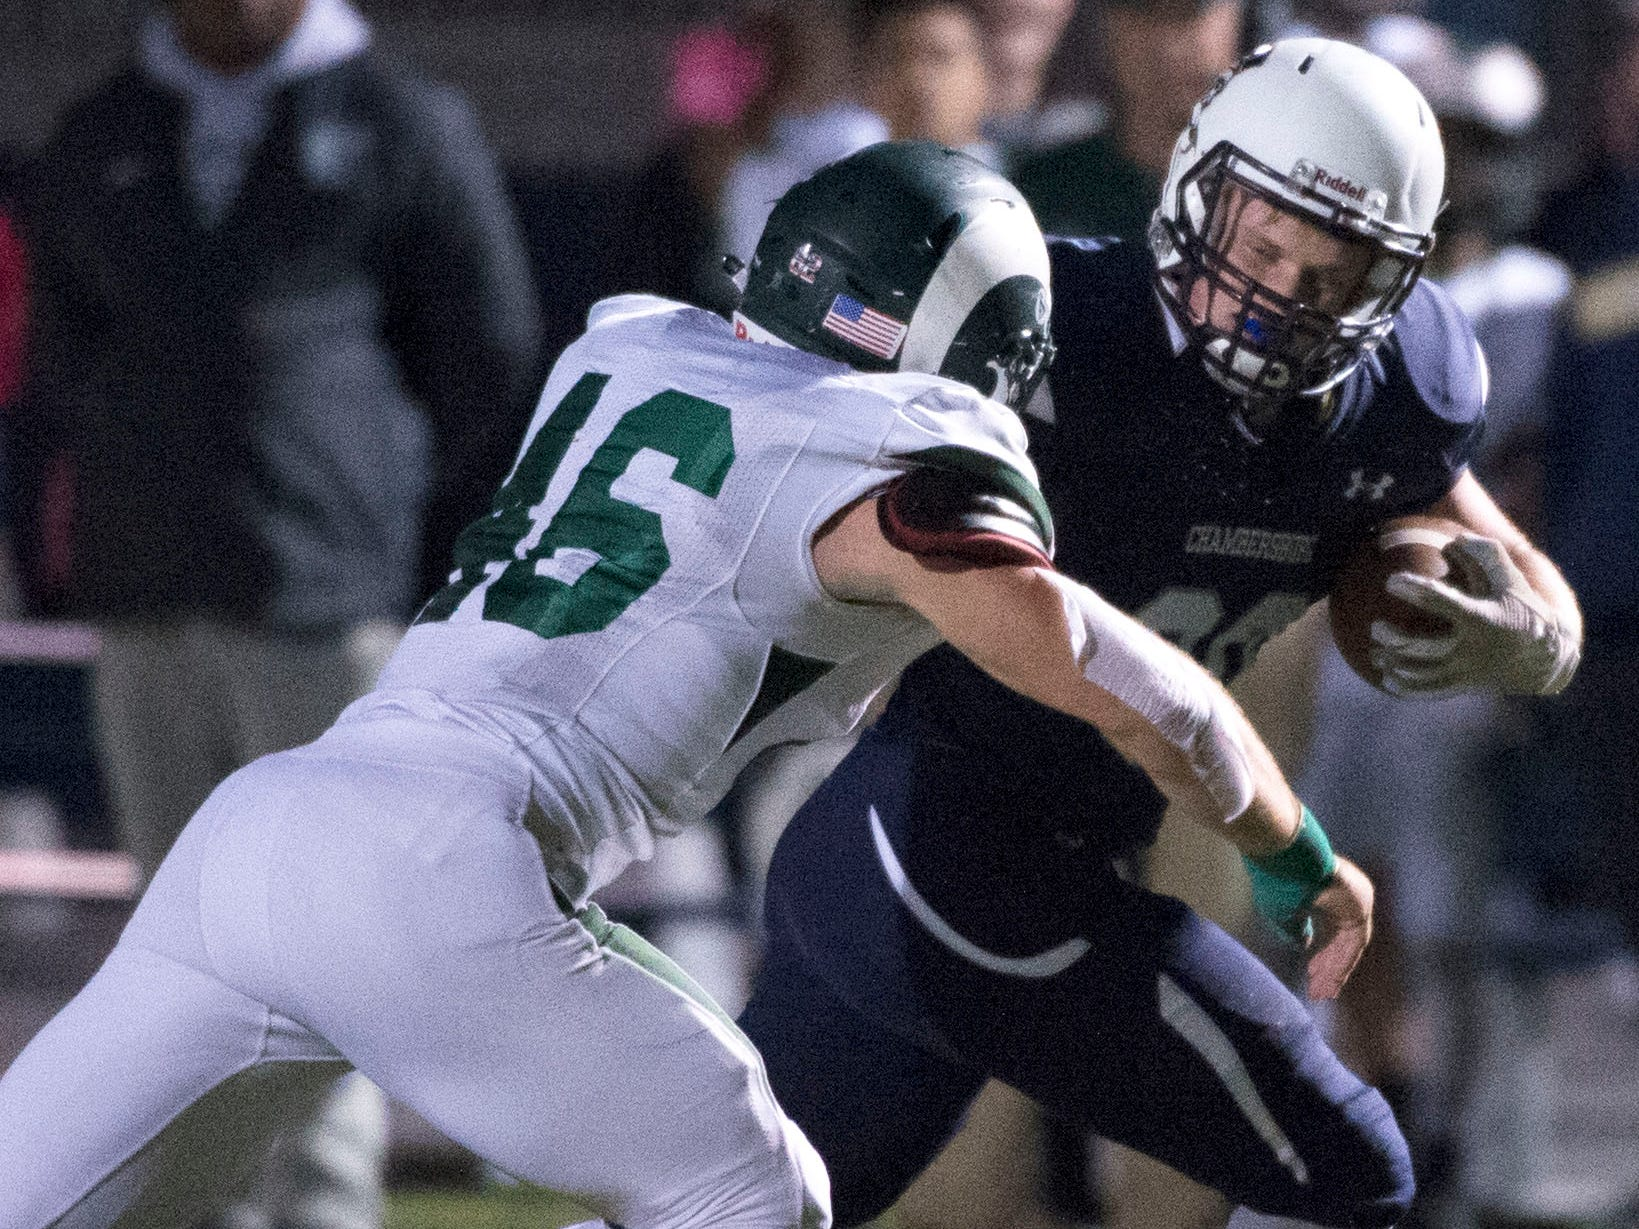 Chambersburg's Tanner Hunt (30) runs the ball past CD's Adam Burkhart (46) after catching a pass. Chambersburg lost to Central Dauphin 35-14 in PIAA football on Friday, Oct. 19, 2018.